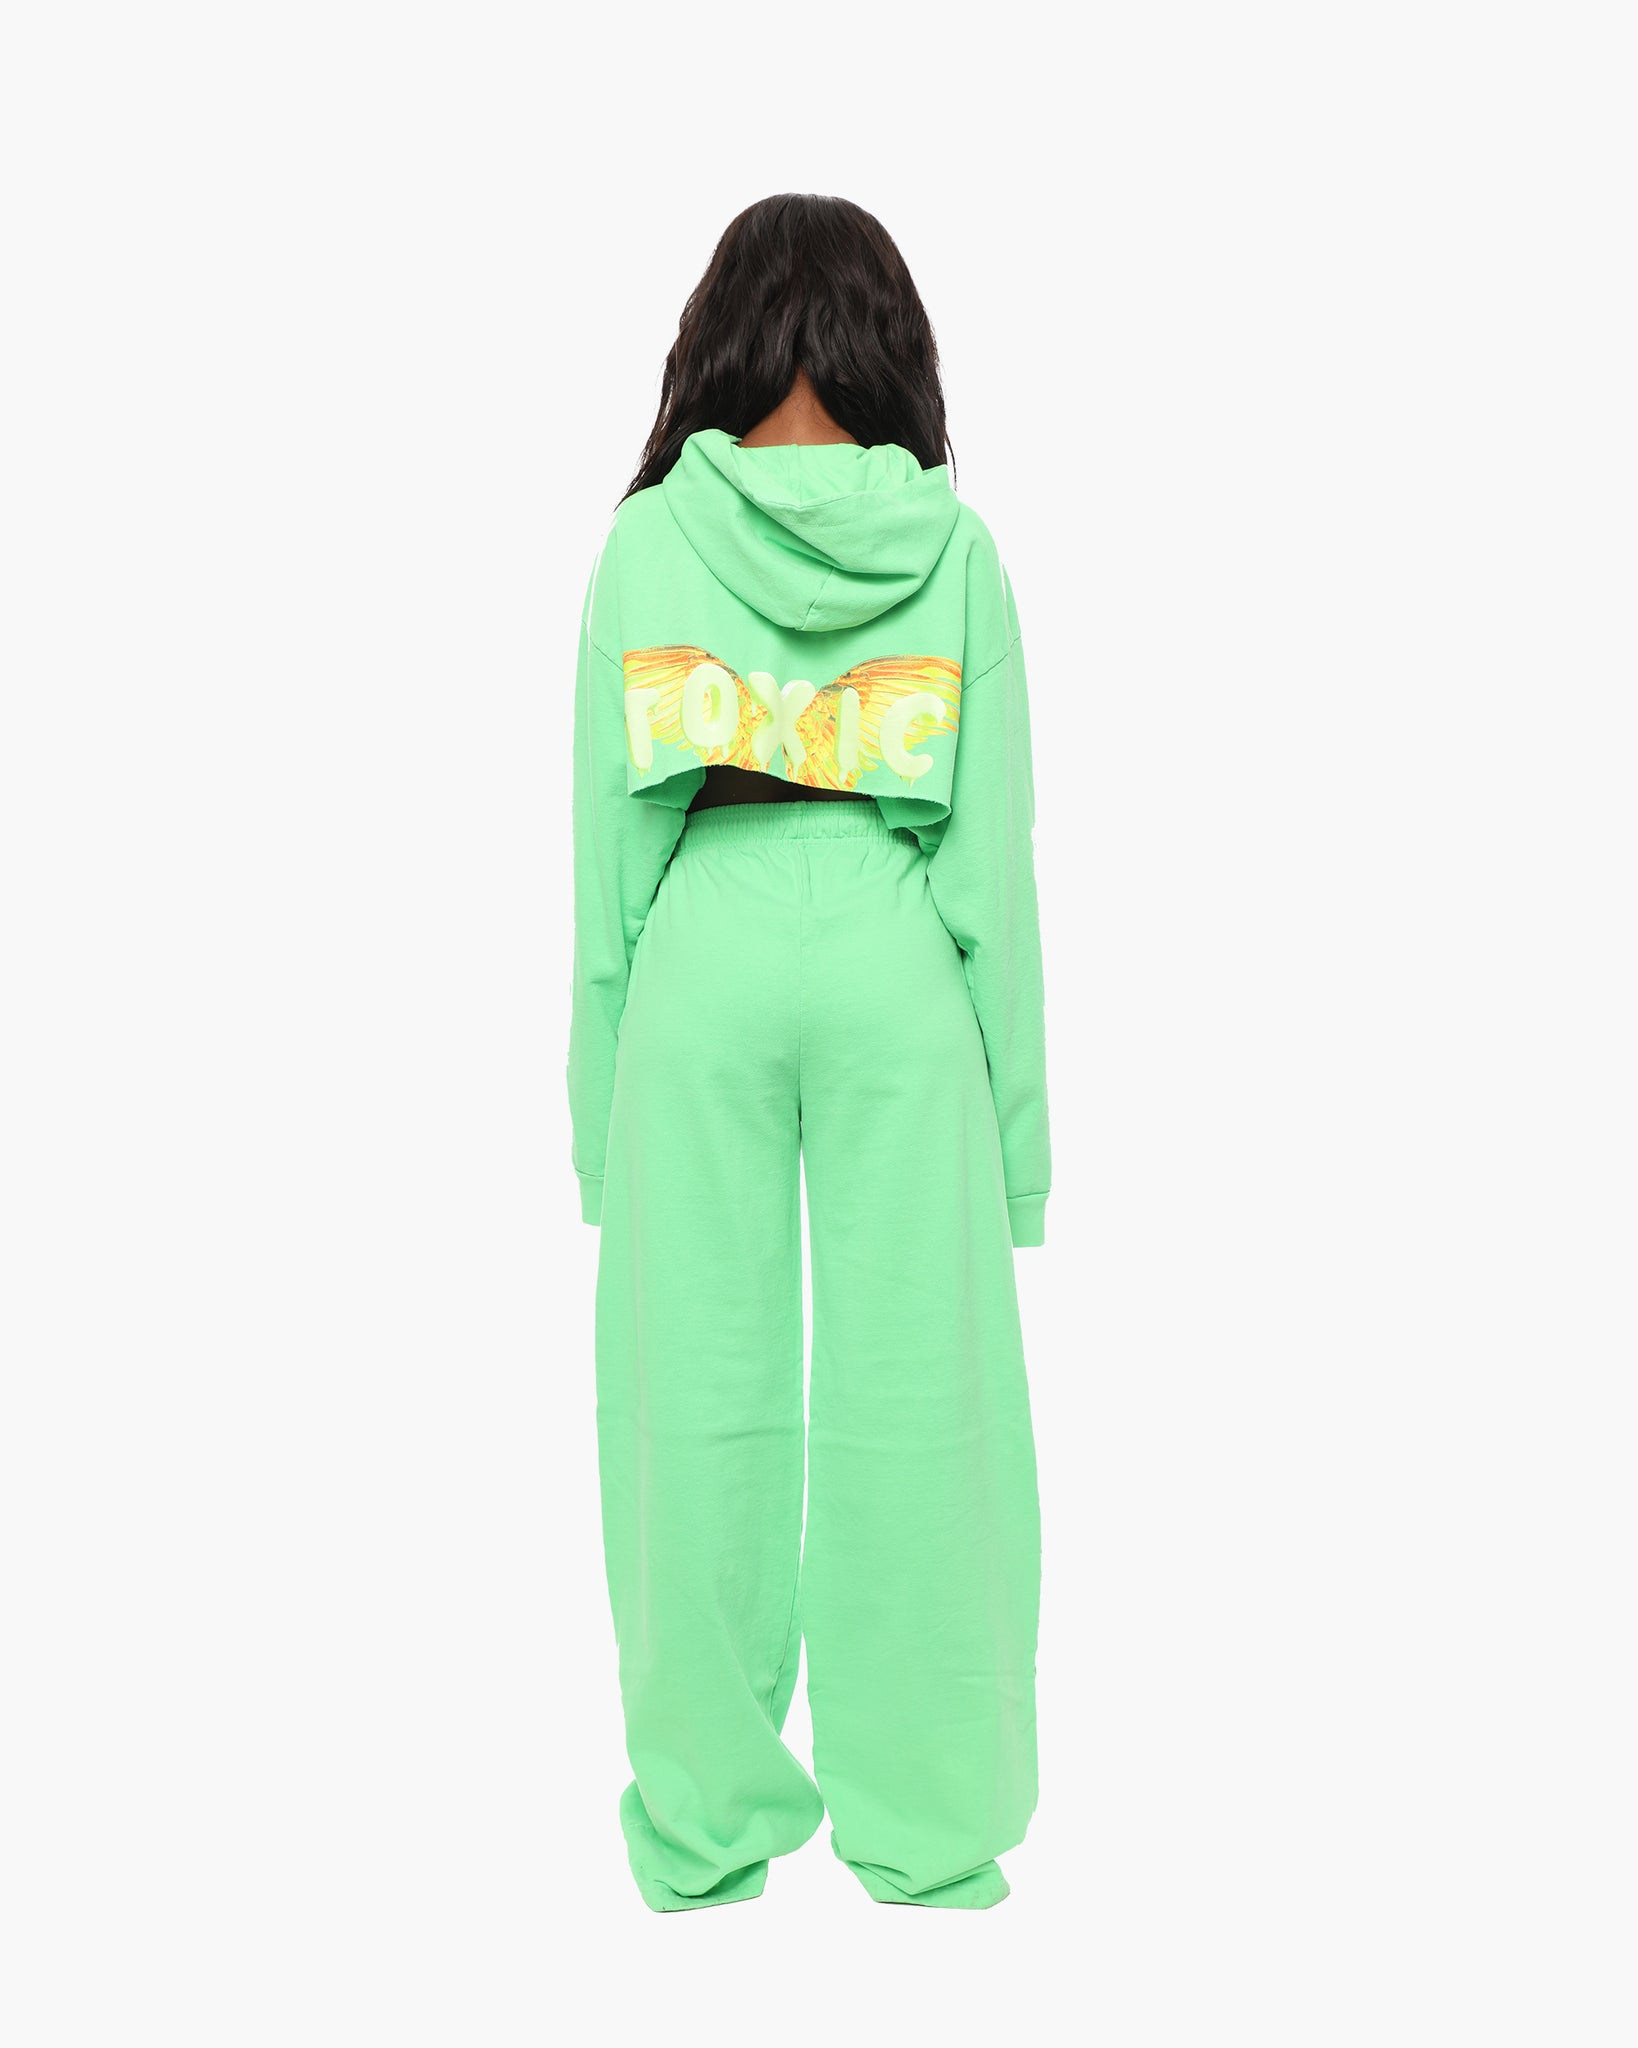 TOXIC LOVE Neon Green Brady Pants